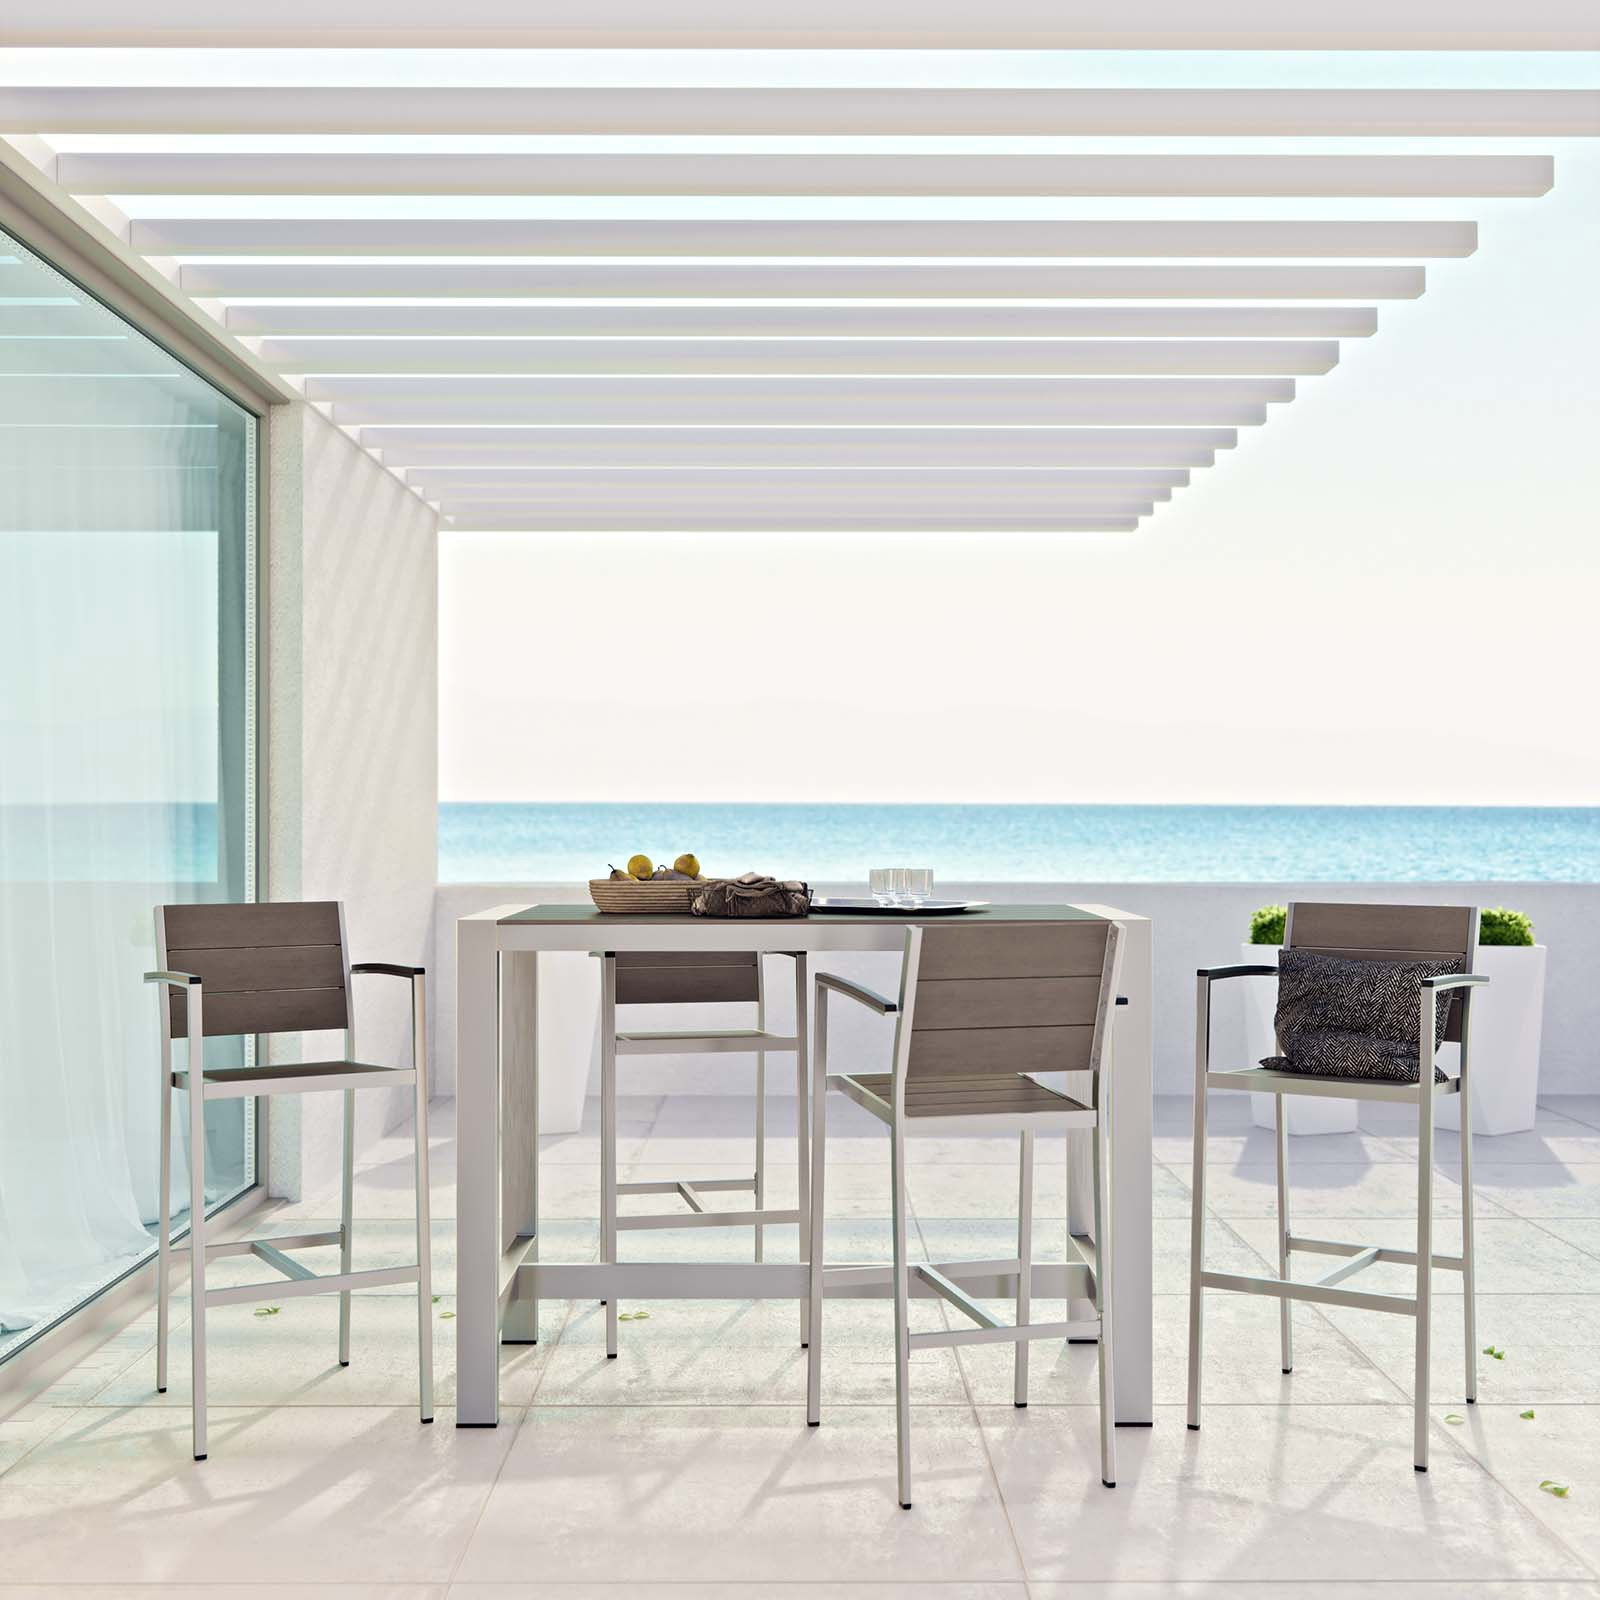 Modway Shore 5-Piece Outdoor Patio Aluminum Dining Set, Silver Grey